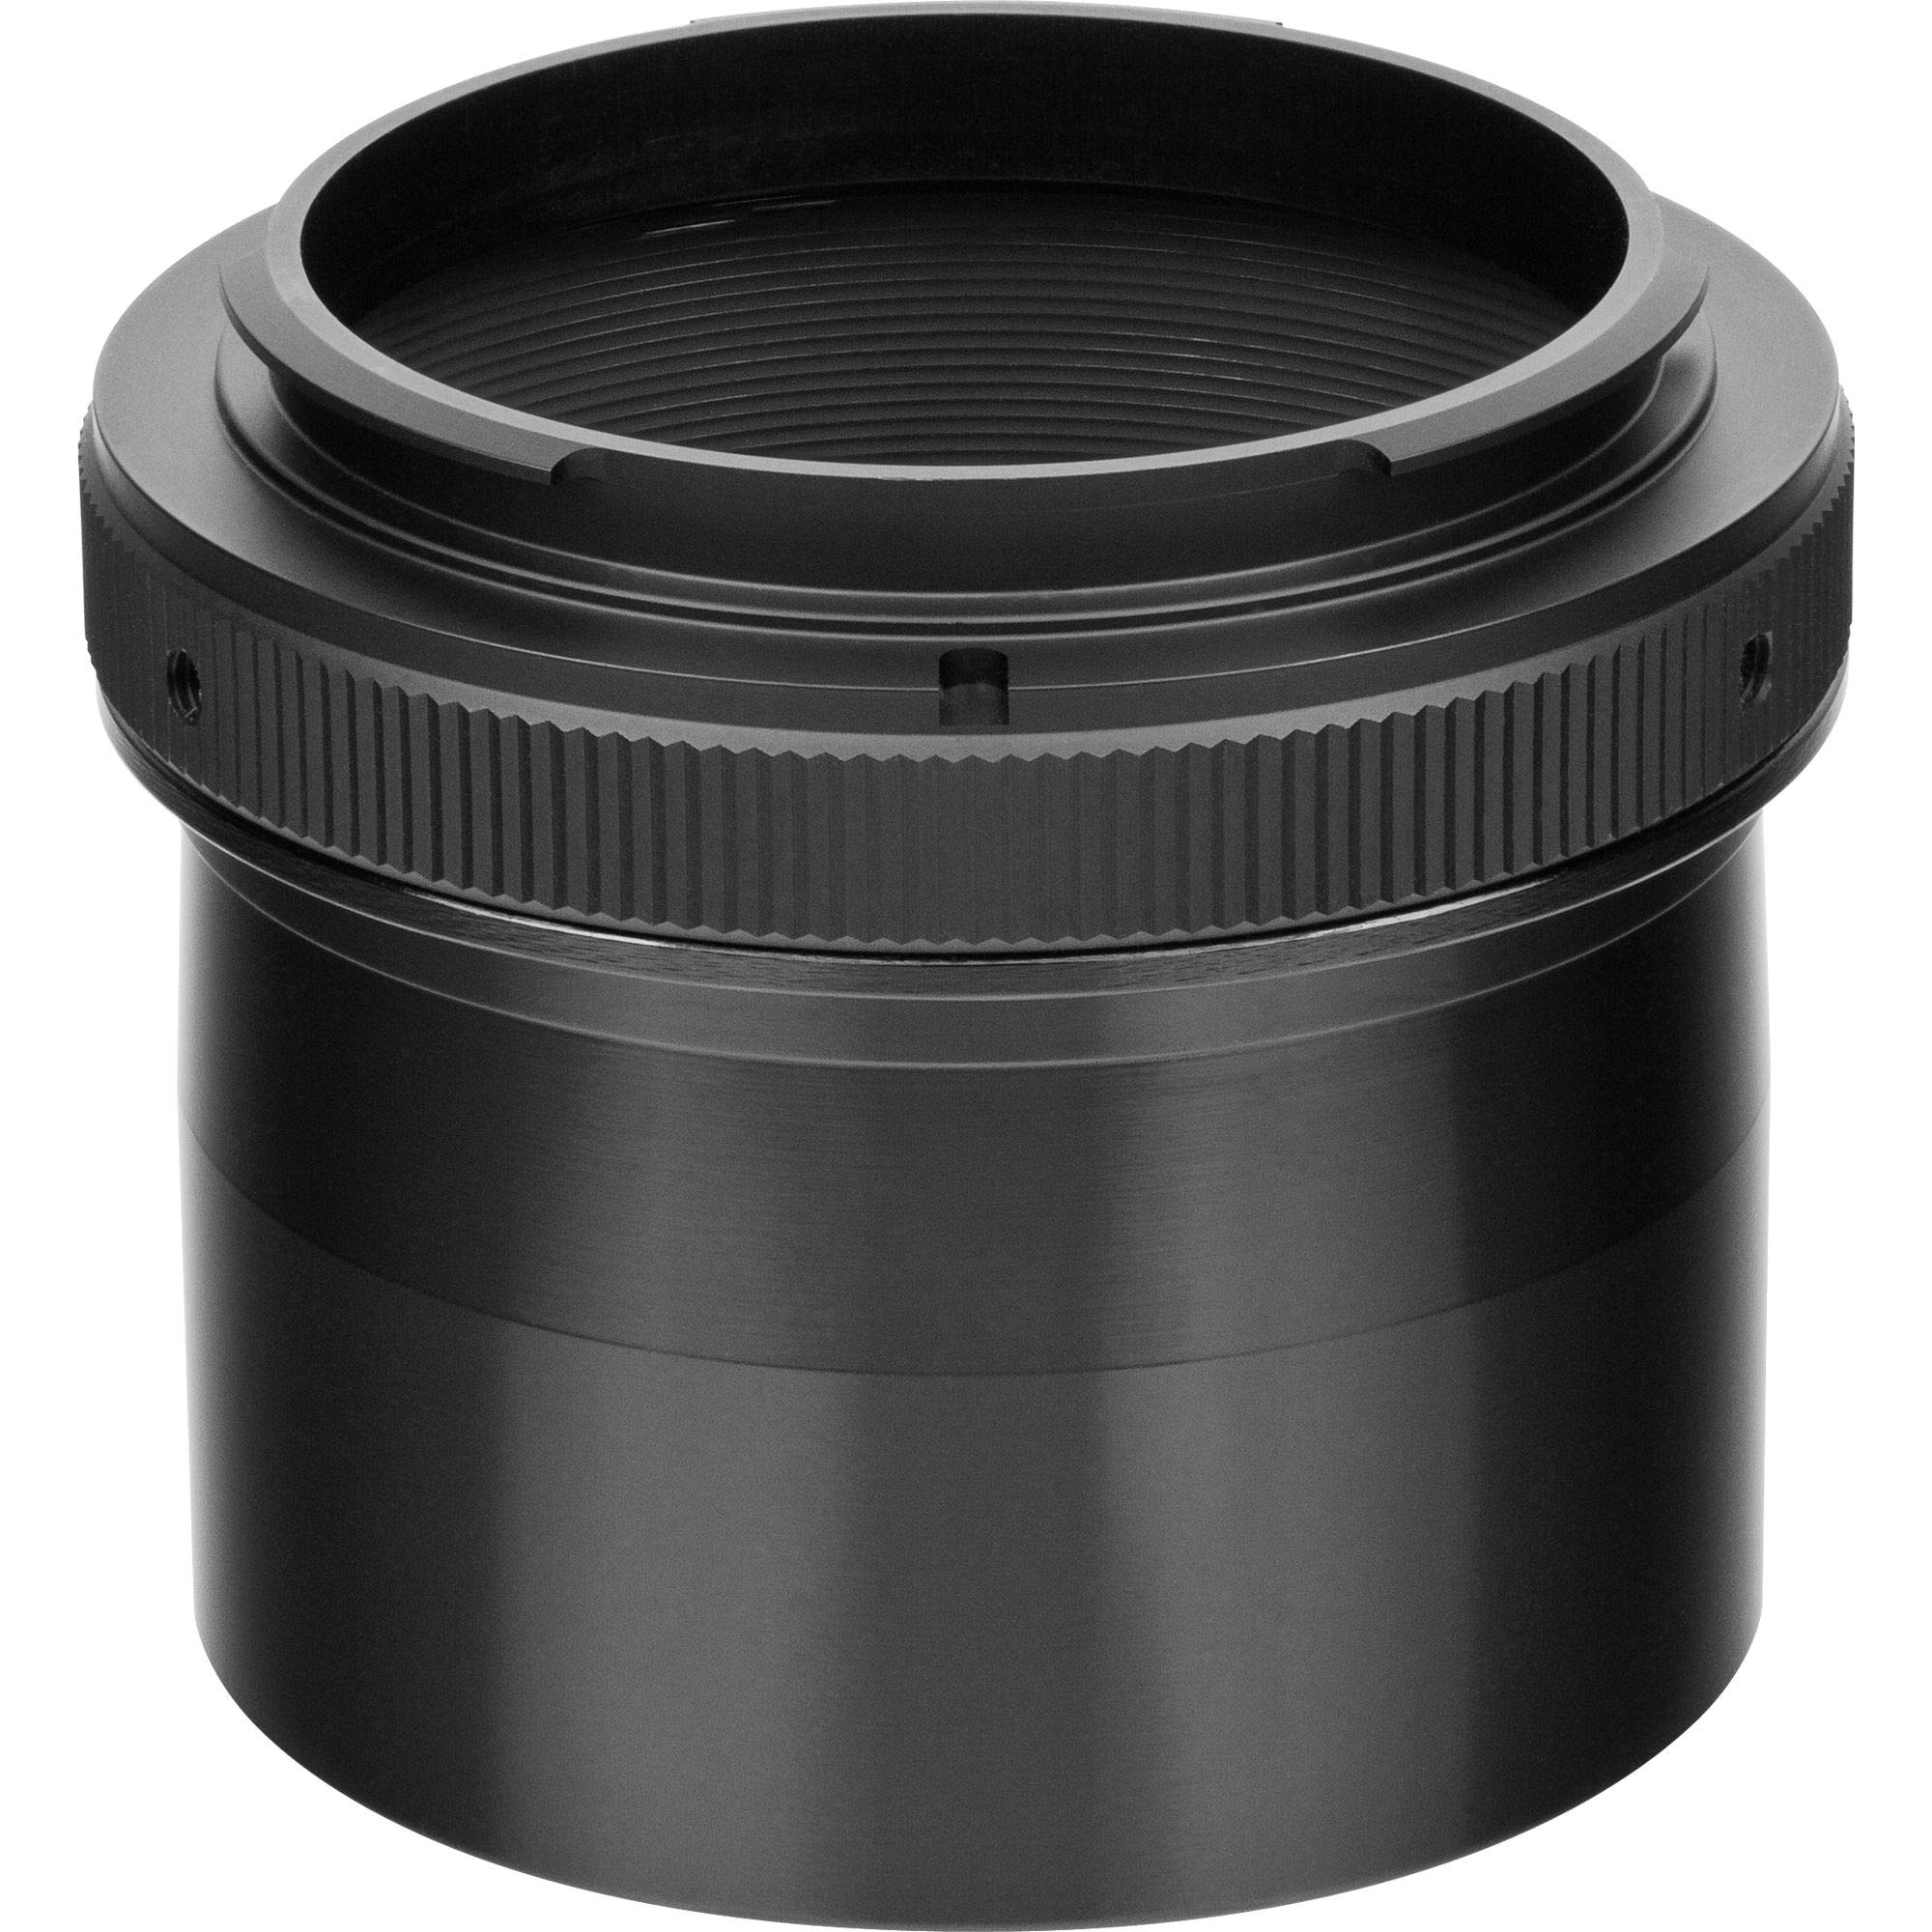 Orion 05641 Superwide 2-Inch Prime Focus Adapter for Nikon Cameras, Black by Orion